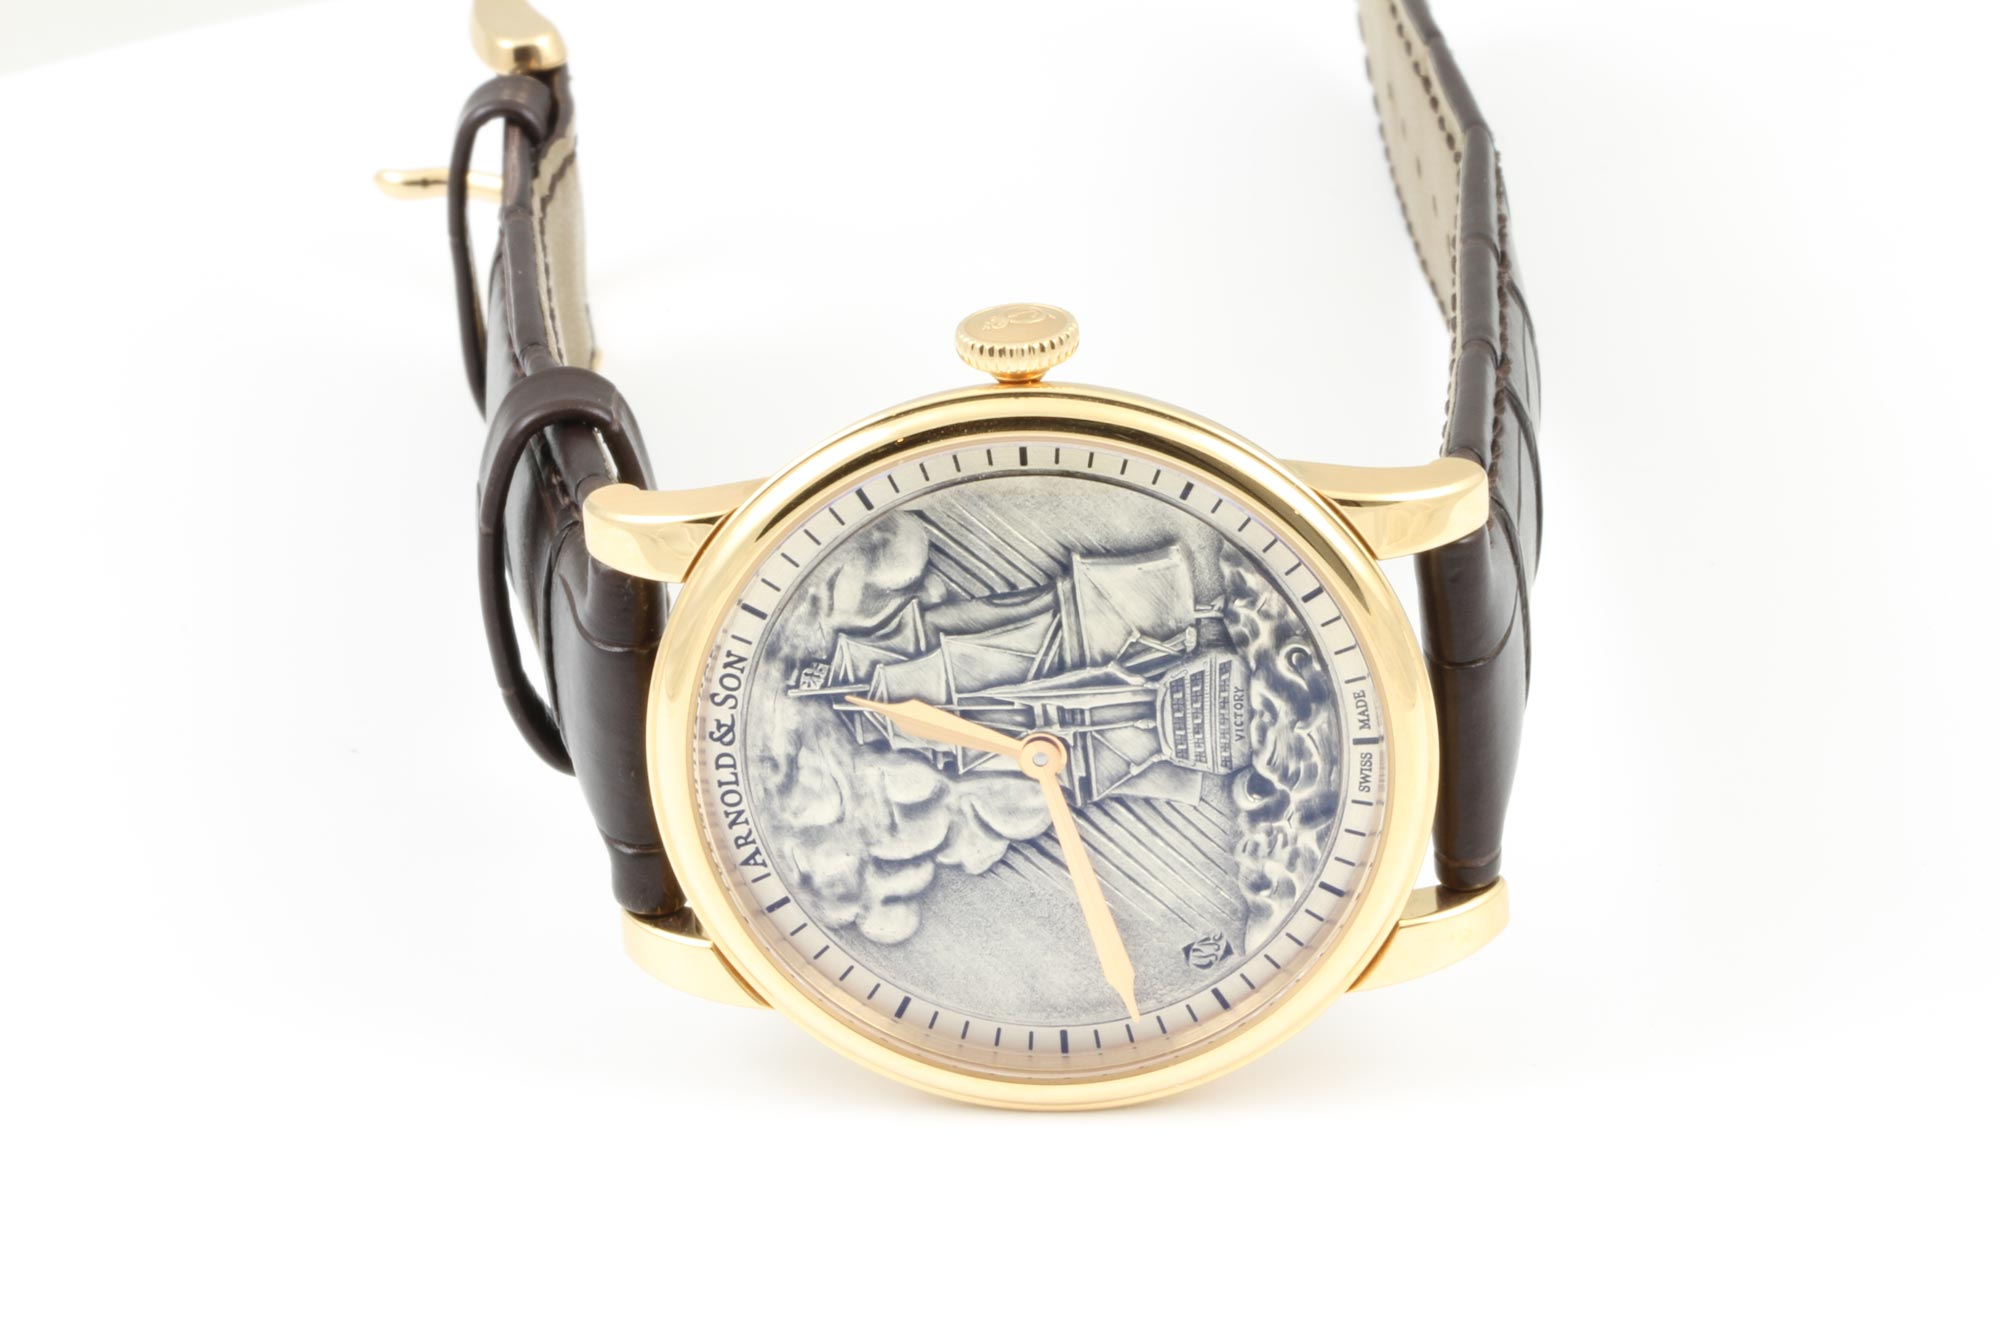 Arnold & Son HMS Victory - HMS Victory At Sea, Lit By Rays Of Sunshine Piercing The Clouds 1LCAP.S05A.C111A